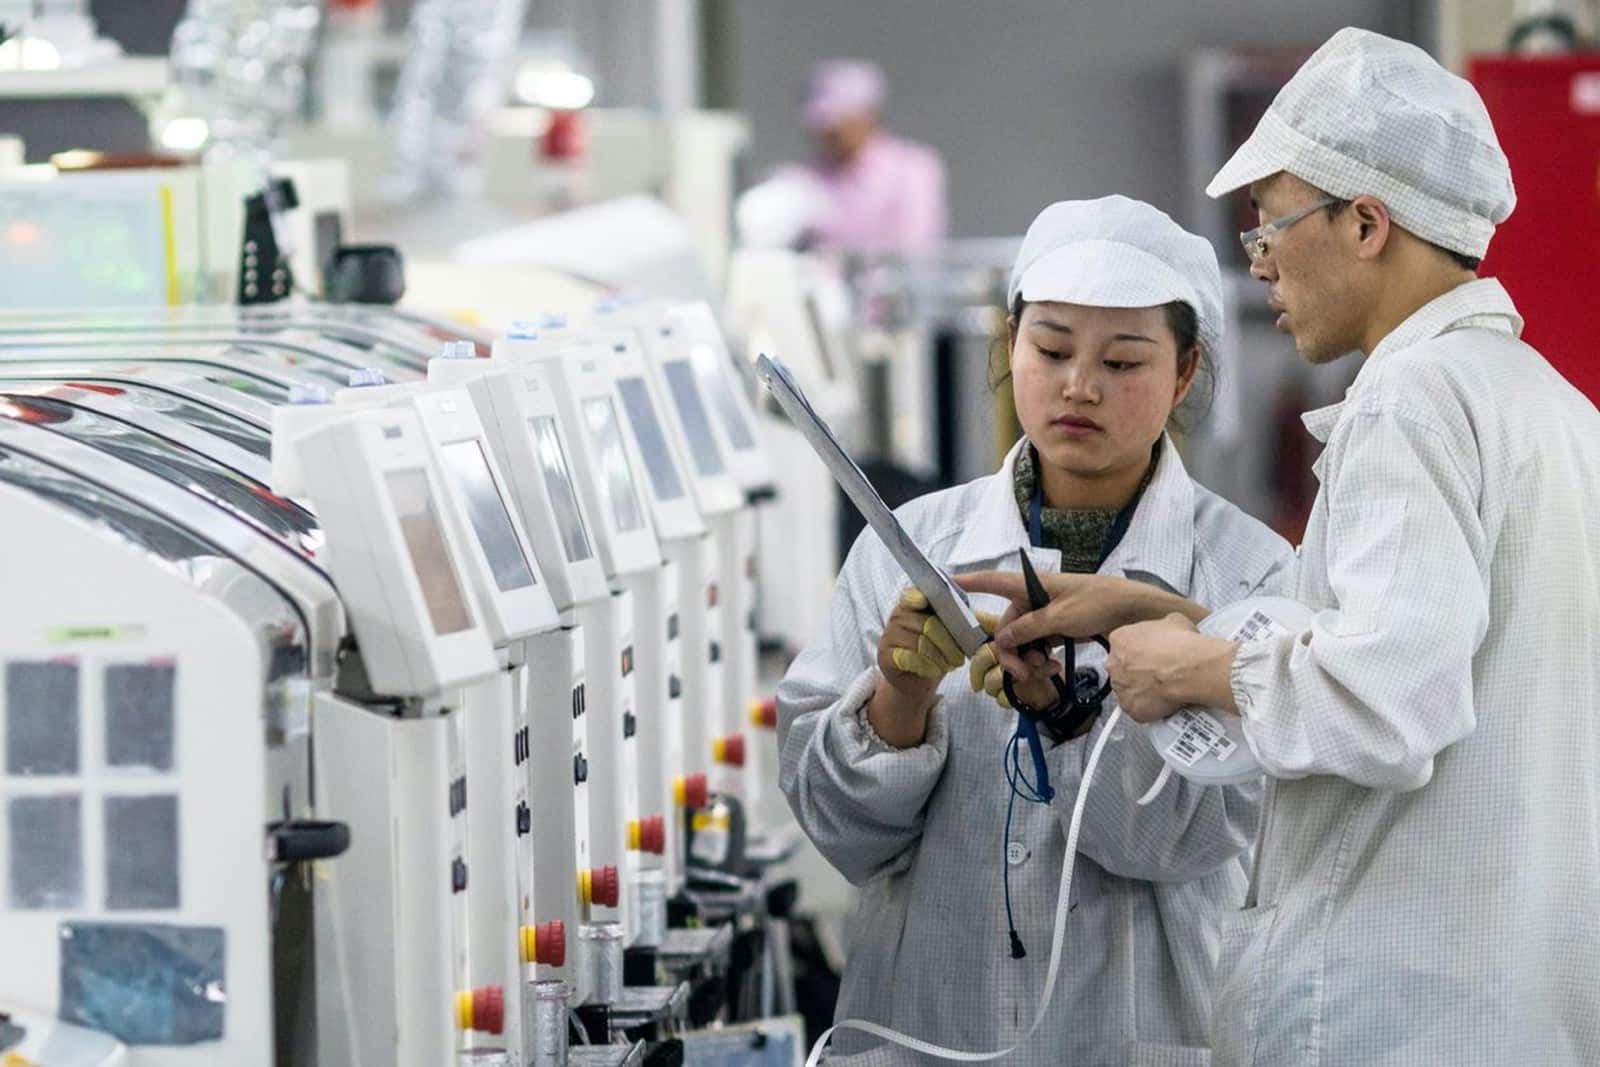 Apple to develop new cybersecurity program for supply chain safety